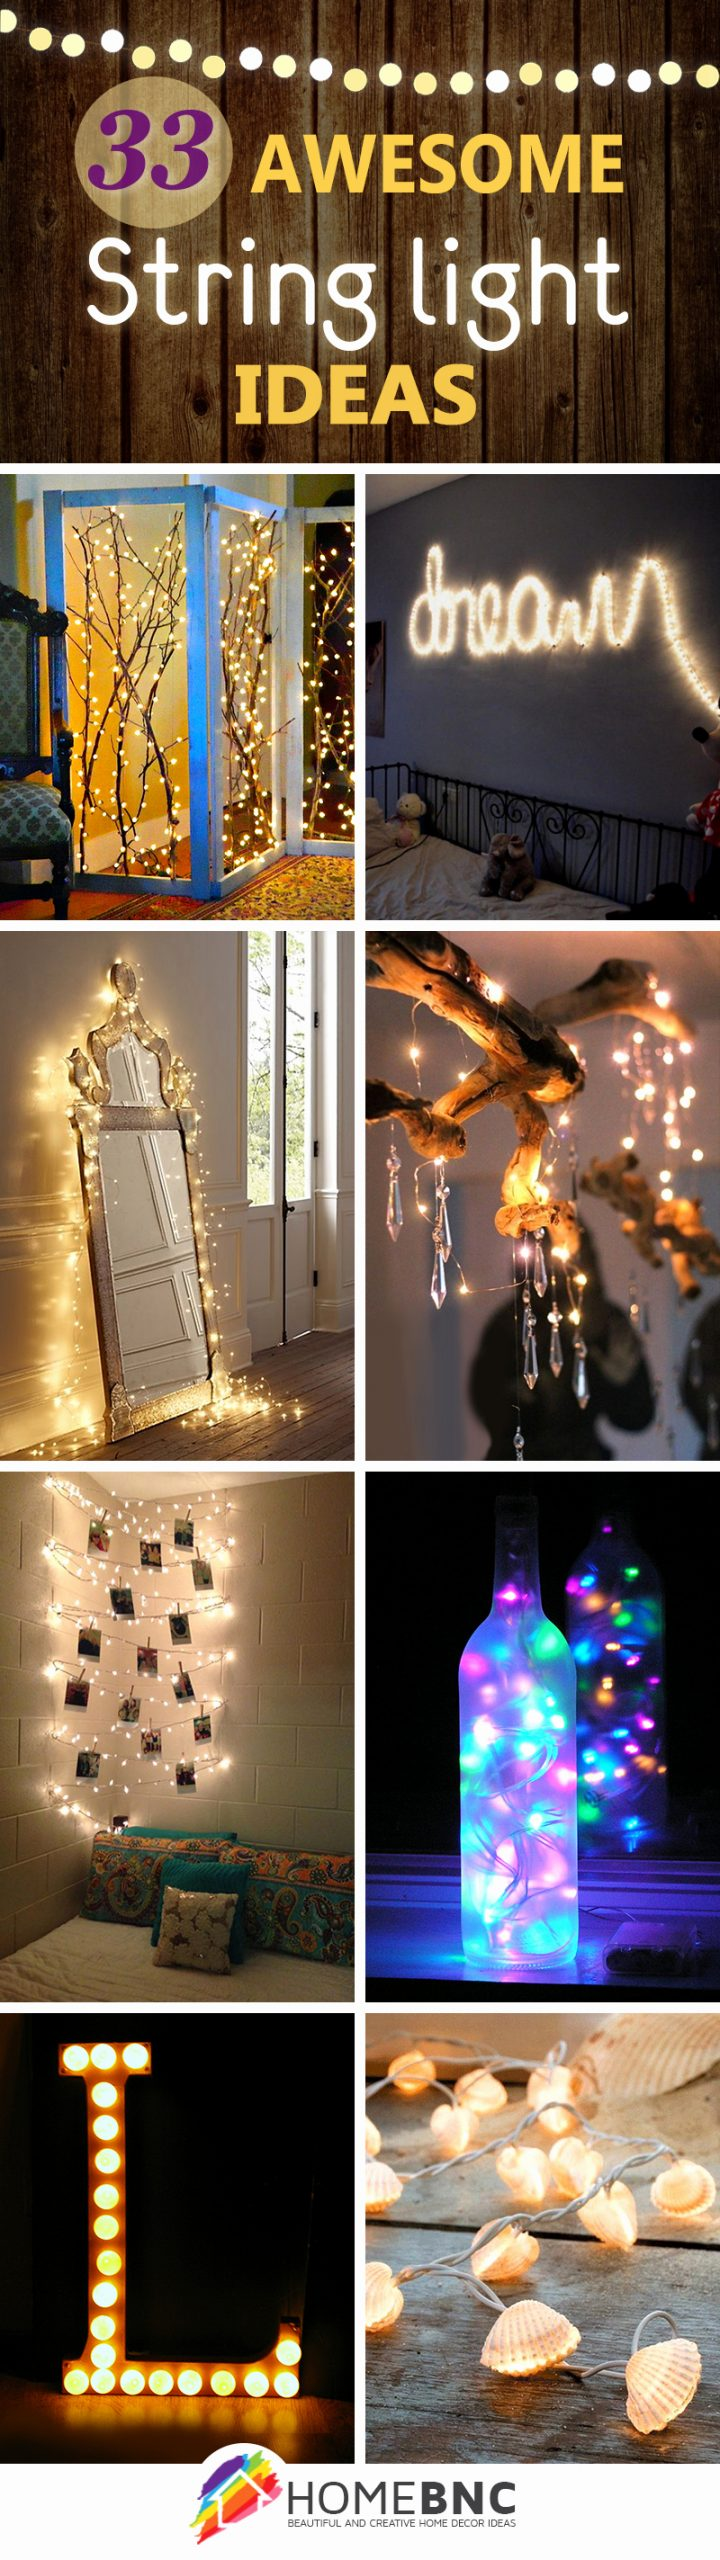 Birthday Decoration Ideas with Led Lights Awesome 33 Best String Lights Decorating Ideas and Designs for 2020